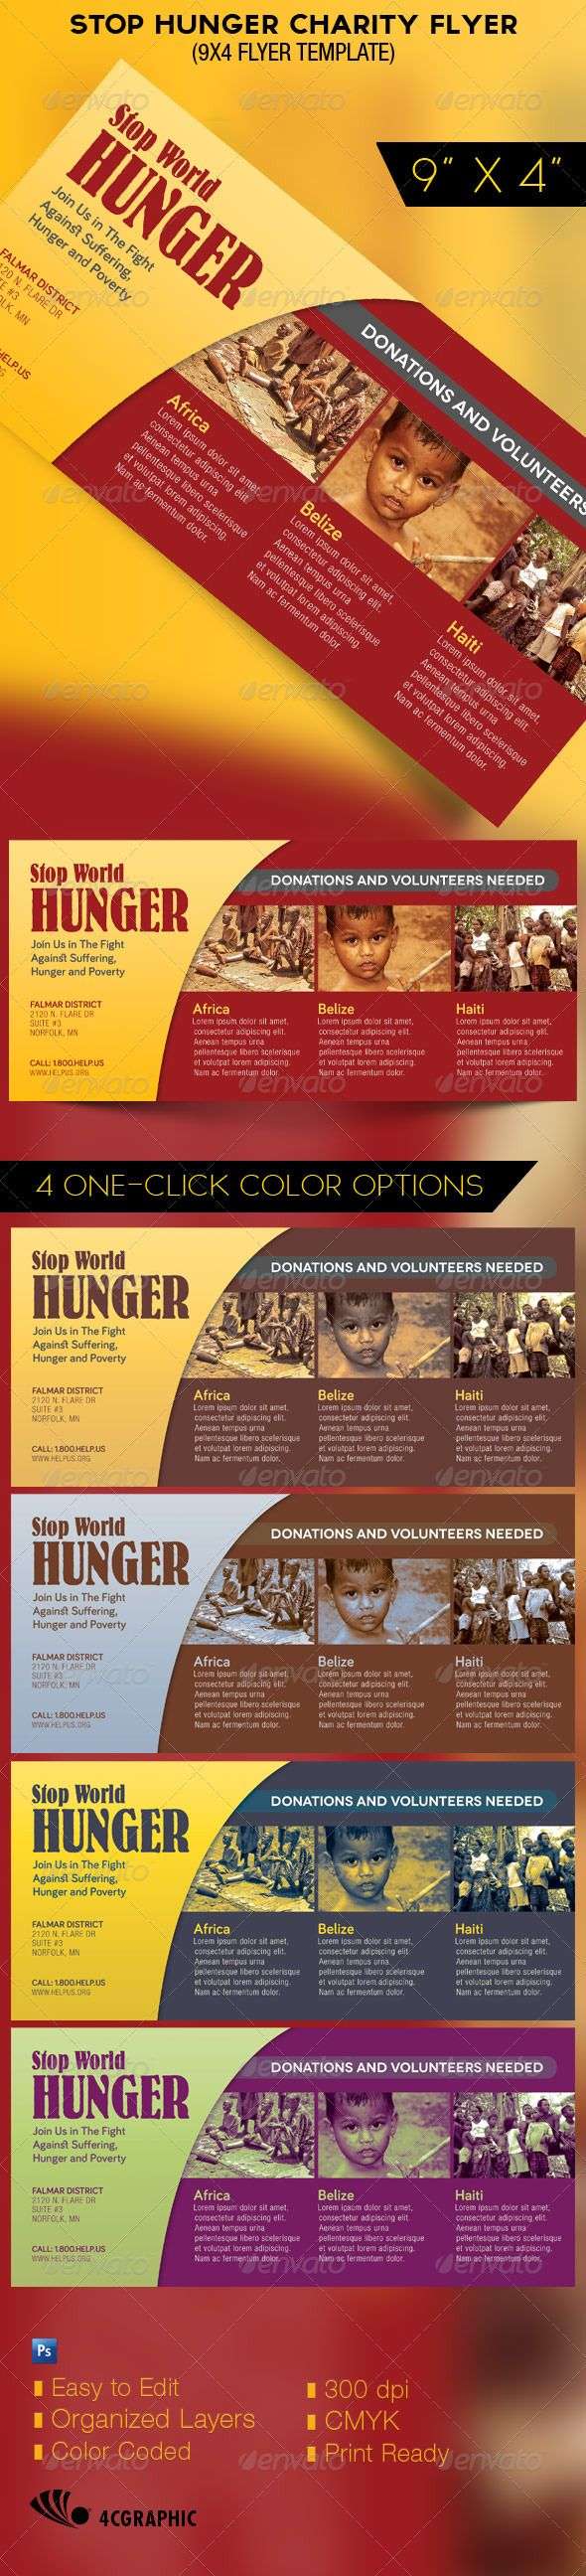 Stop Hunger Charity Organization Flyer Template - Church Flyers